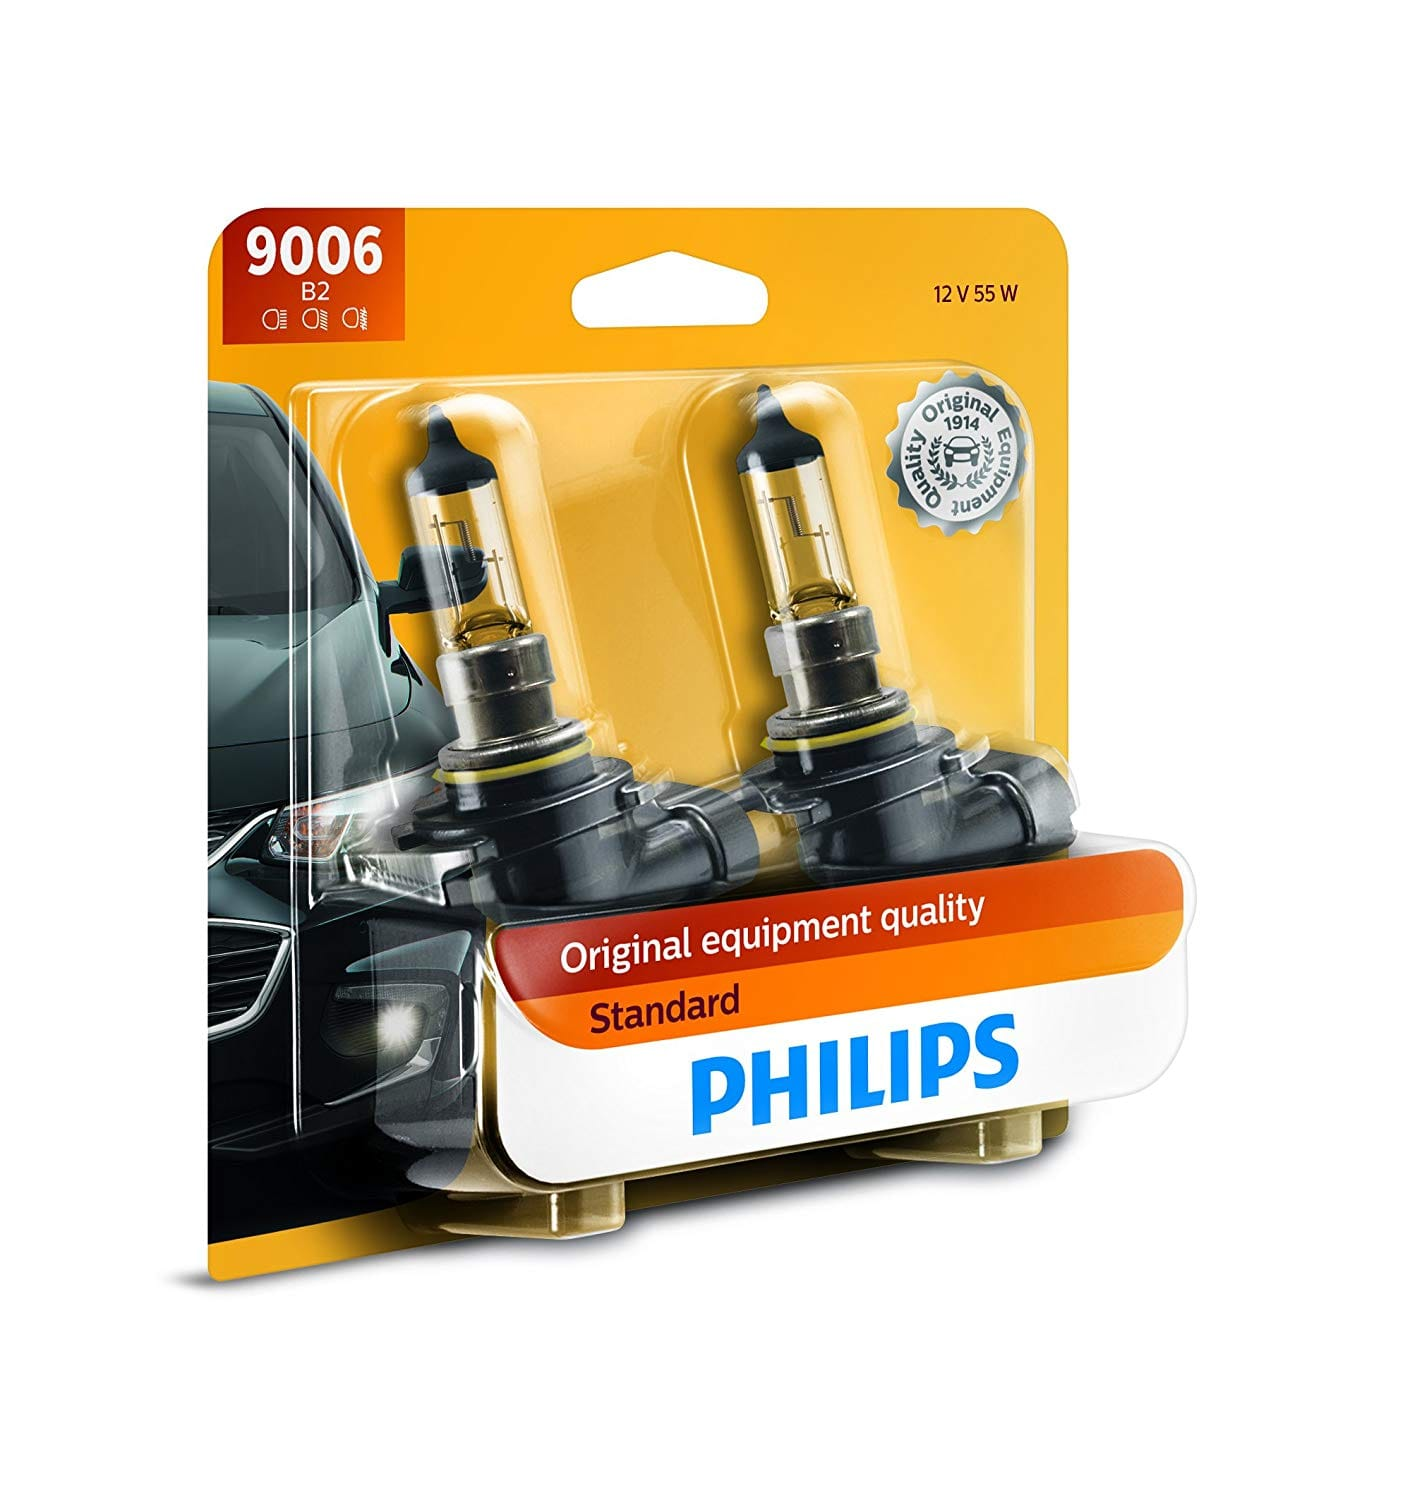 2 pack Philips 9006 Standard Halogen Replacement Headlight Bulb, $8.05, Amazon